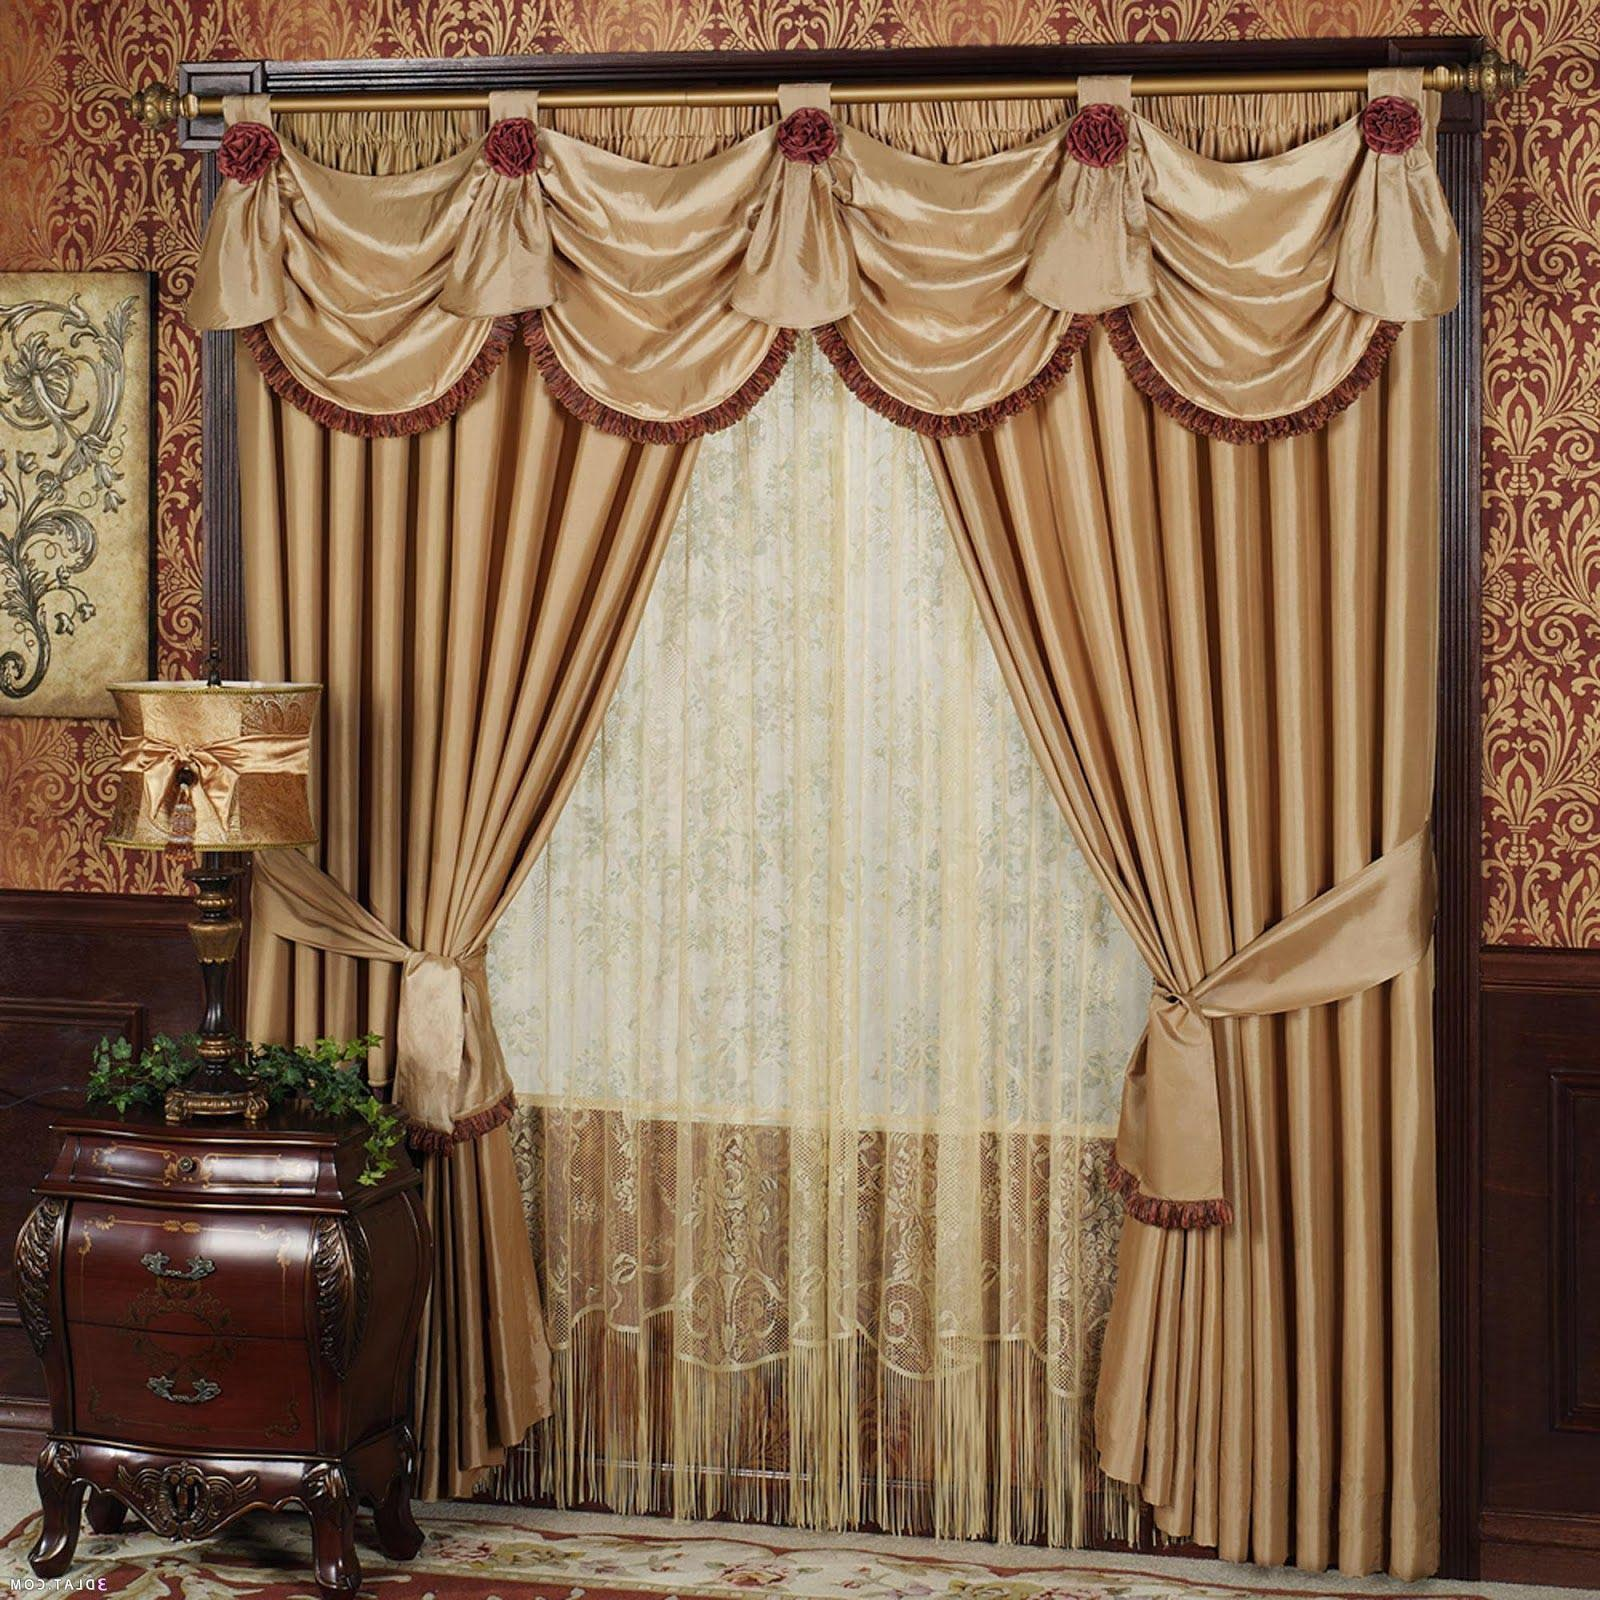 Living Room Drapes With Valances Window Treatments Design Ideas